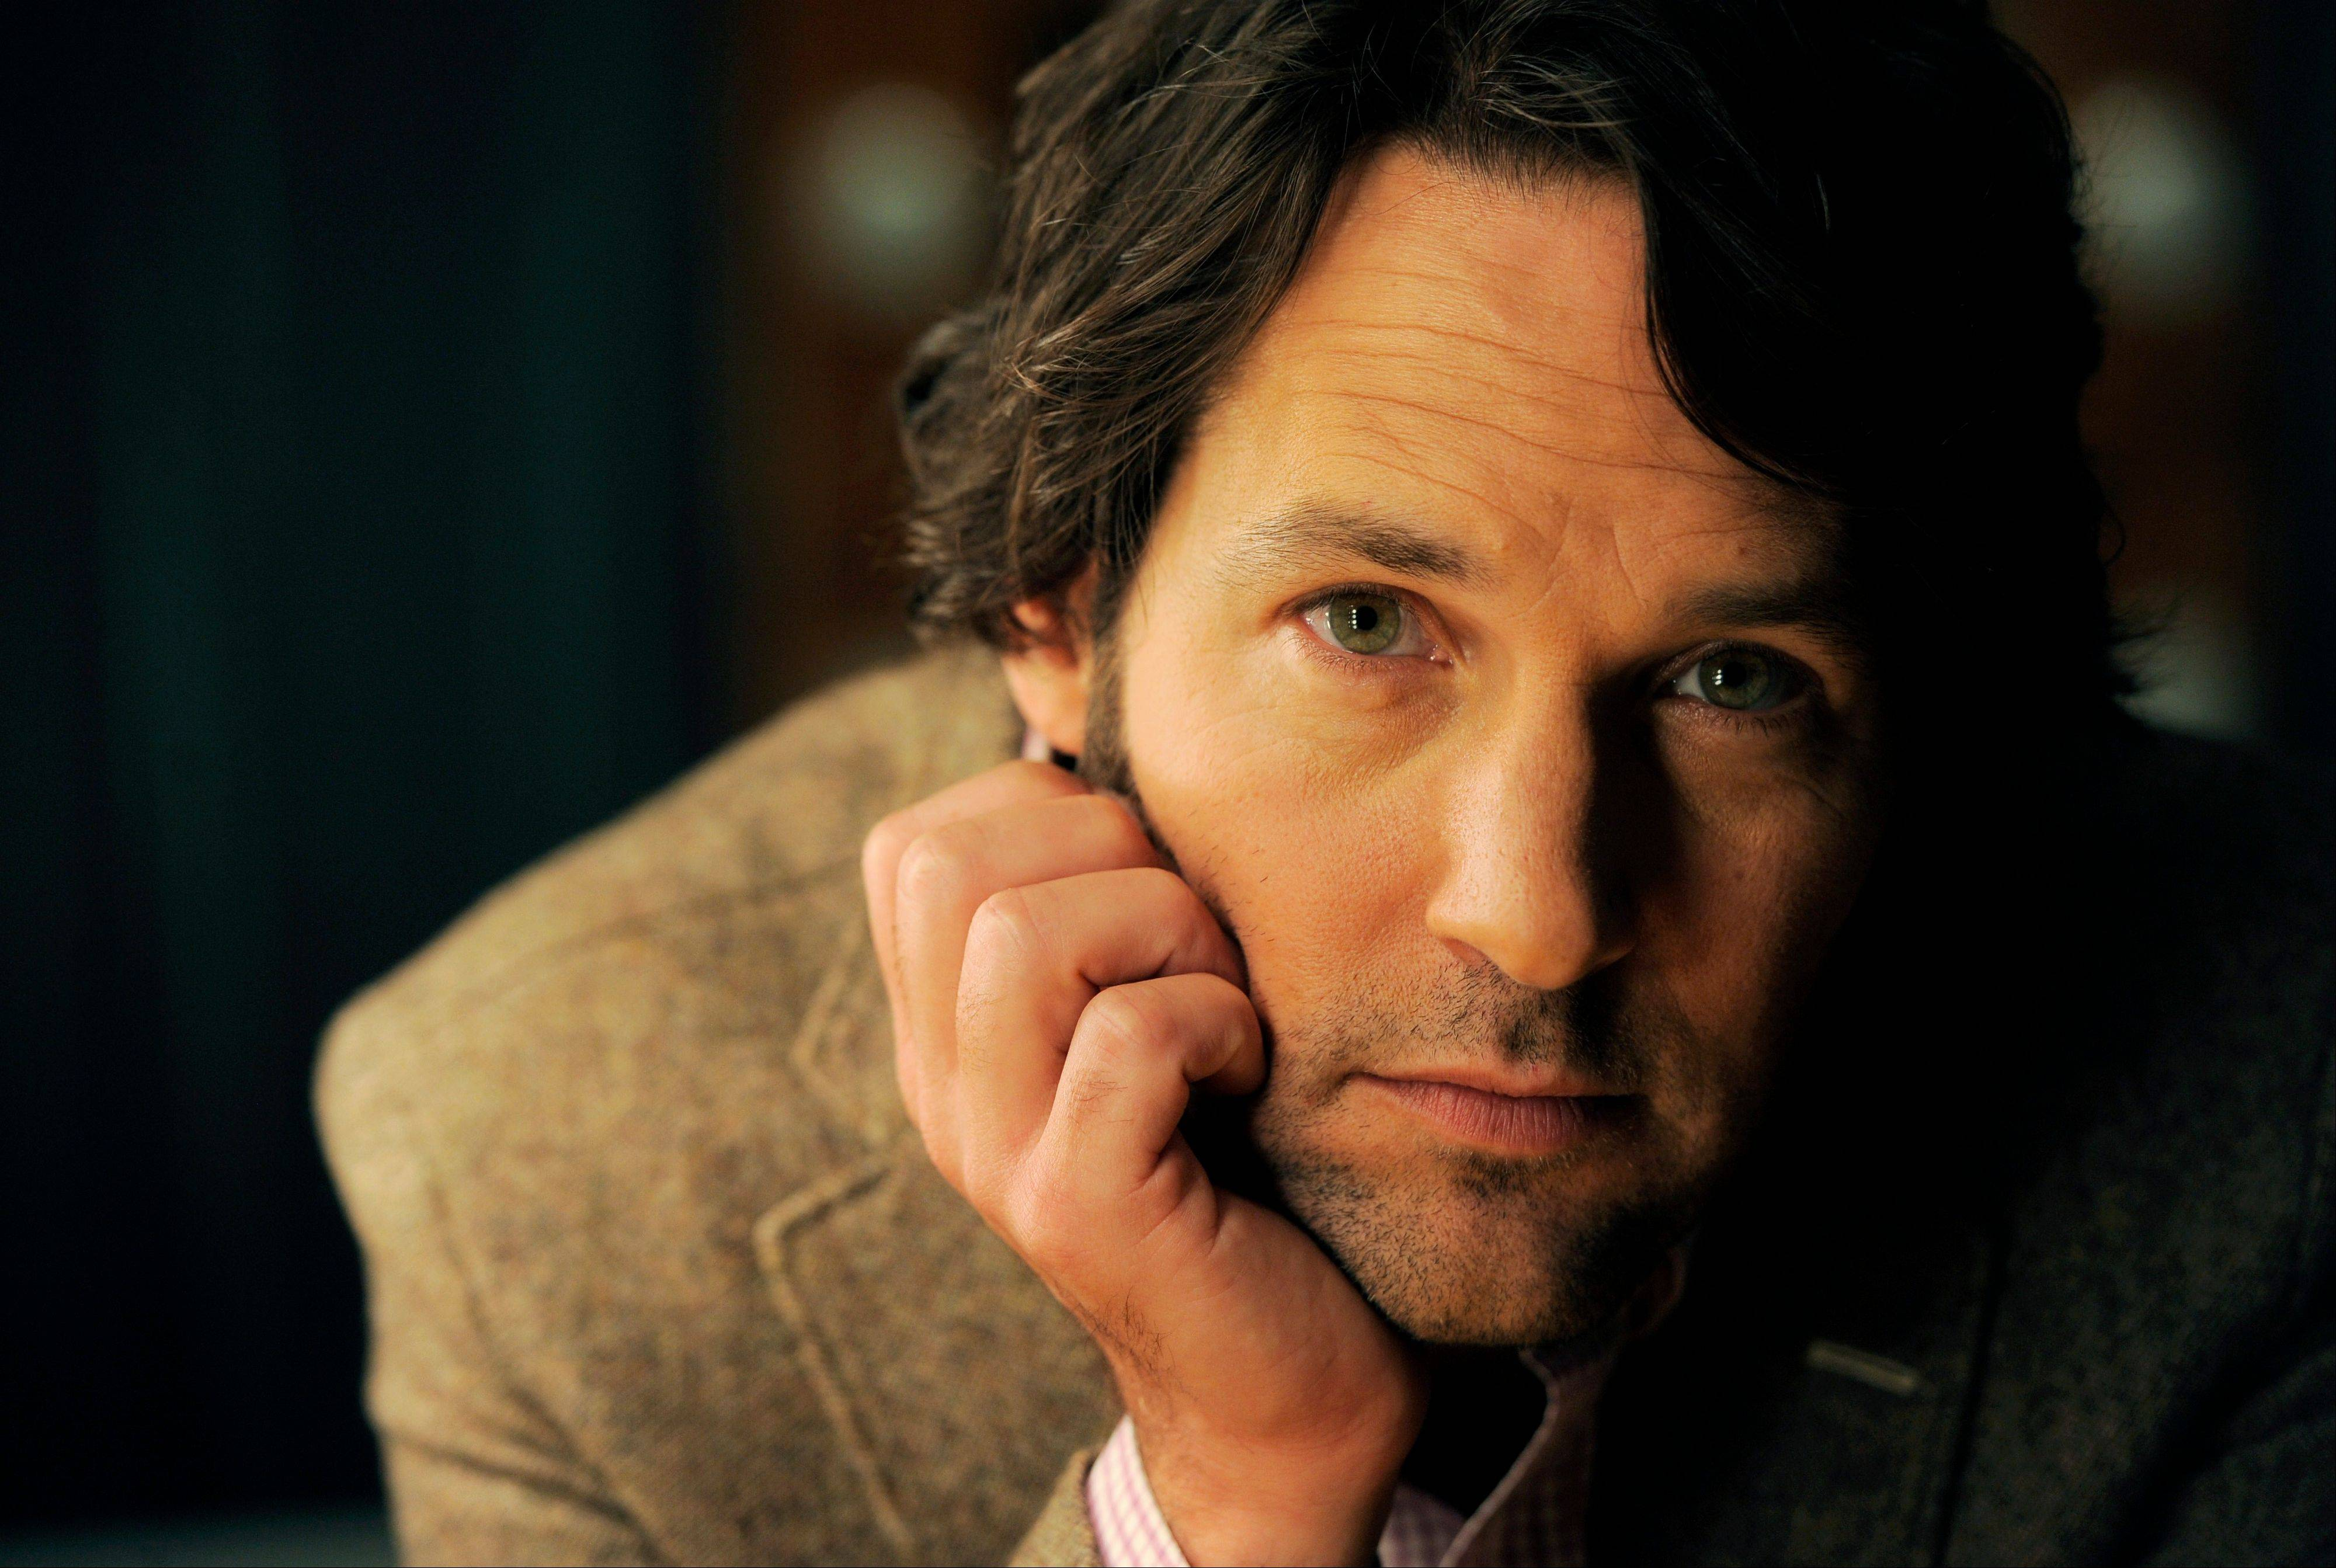 Paul Rudd�s ready for a dose of goofy comedy after taking on his latest dark stage role in �Grace.�